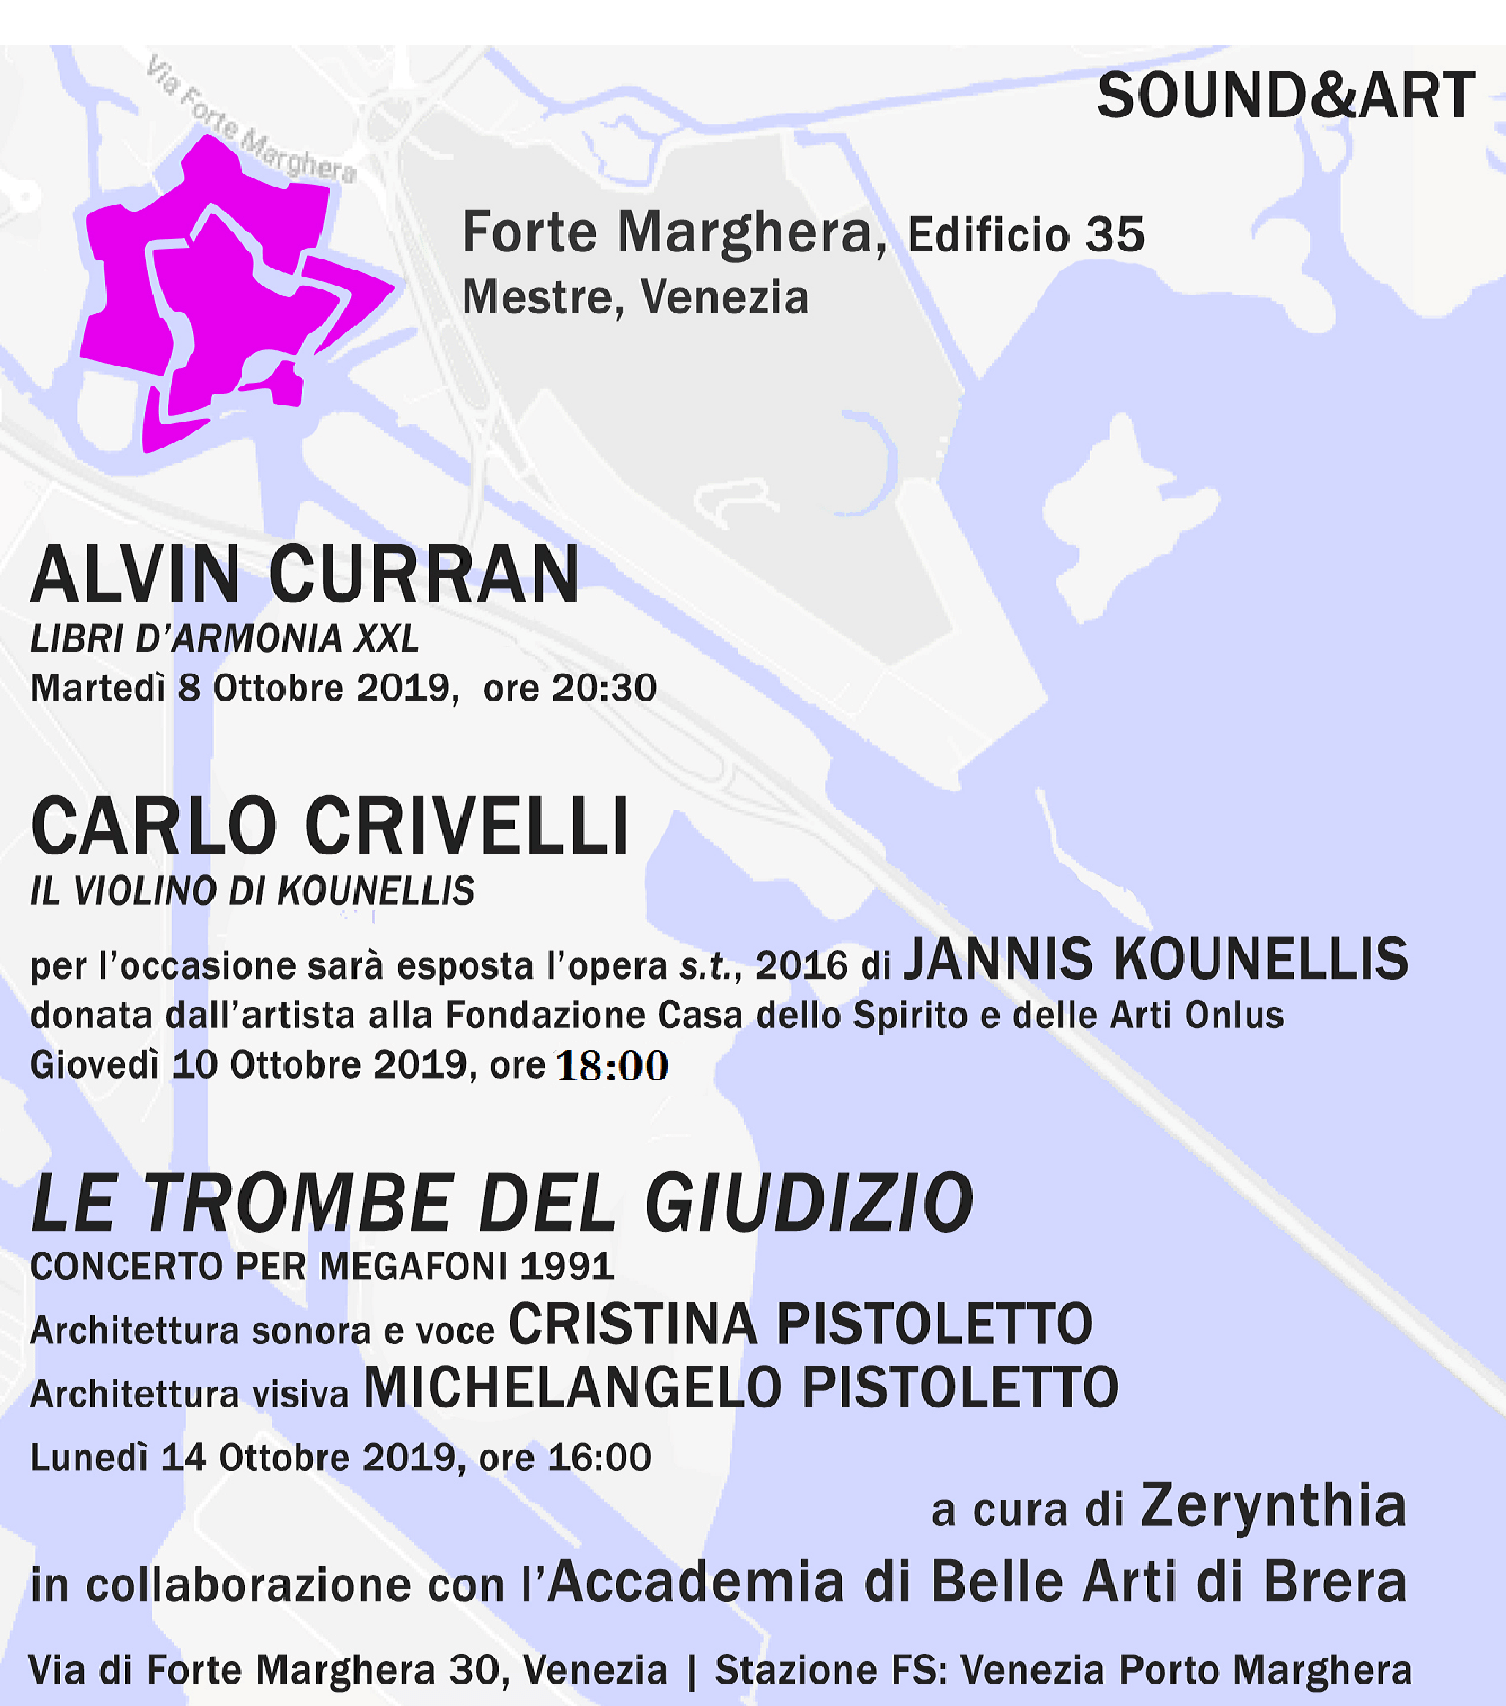 Invitation to Forte Marghera Sound&Art